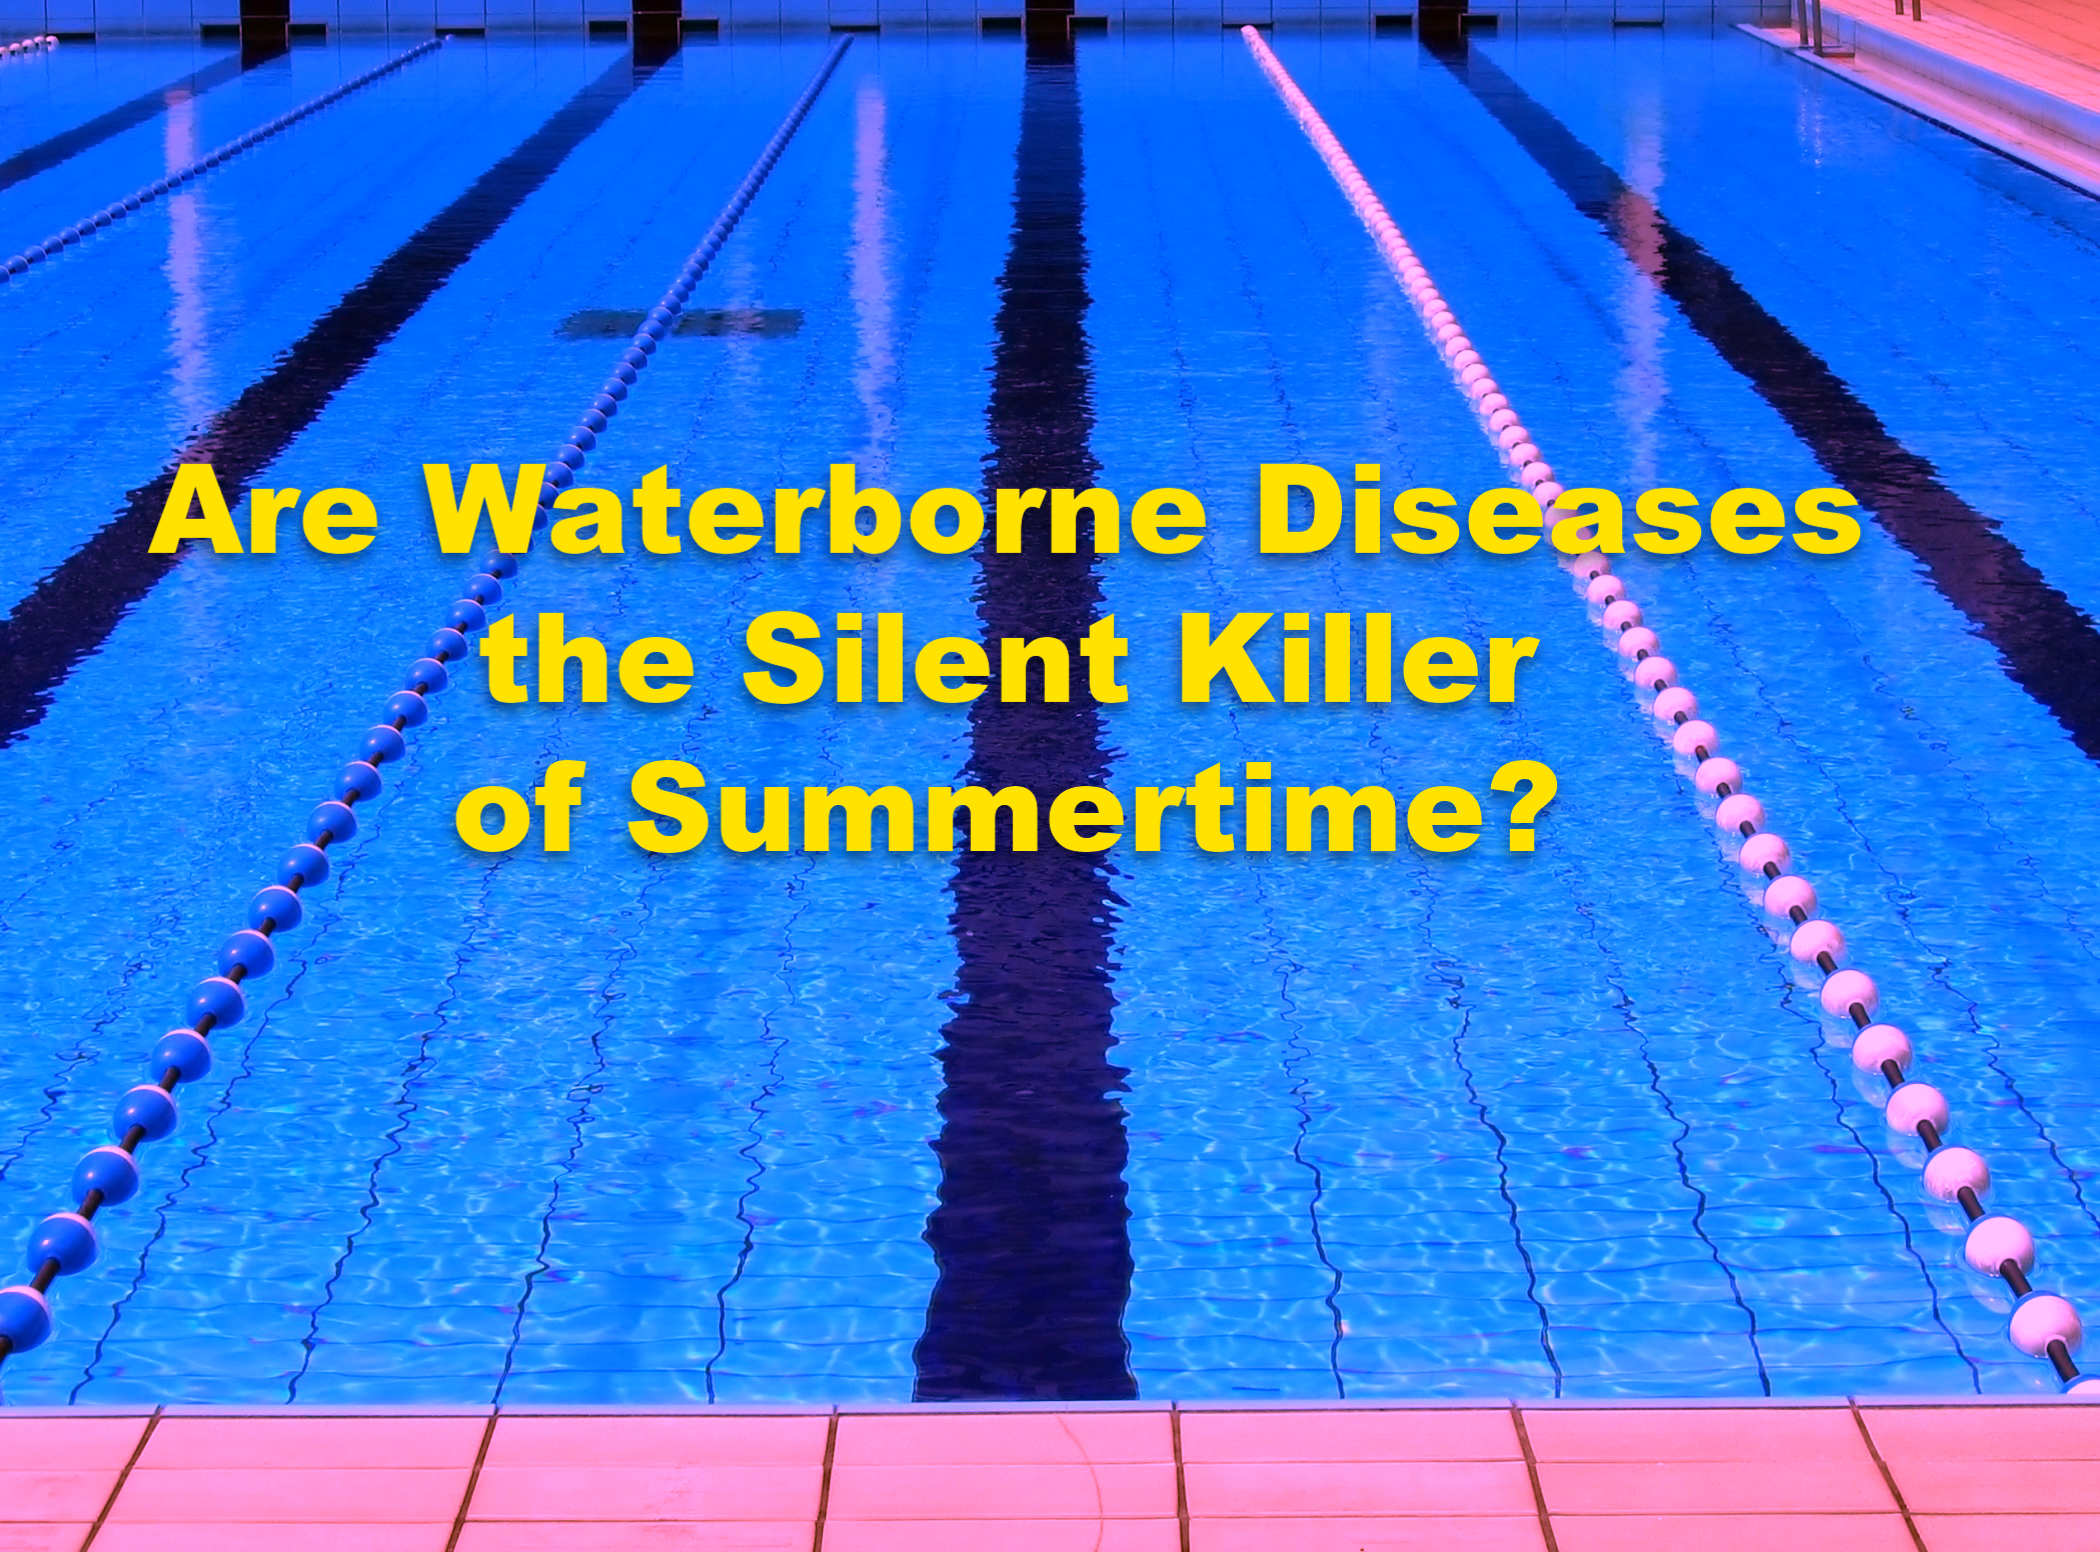 Are Waterborne Diseases the Silent Killer of Summertime?